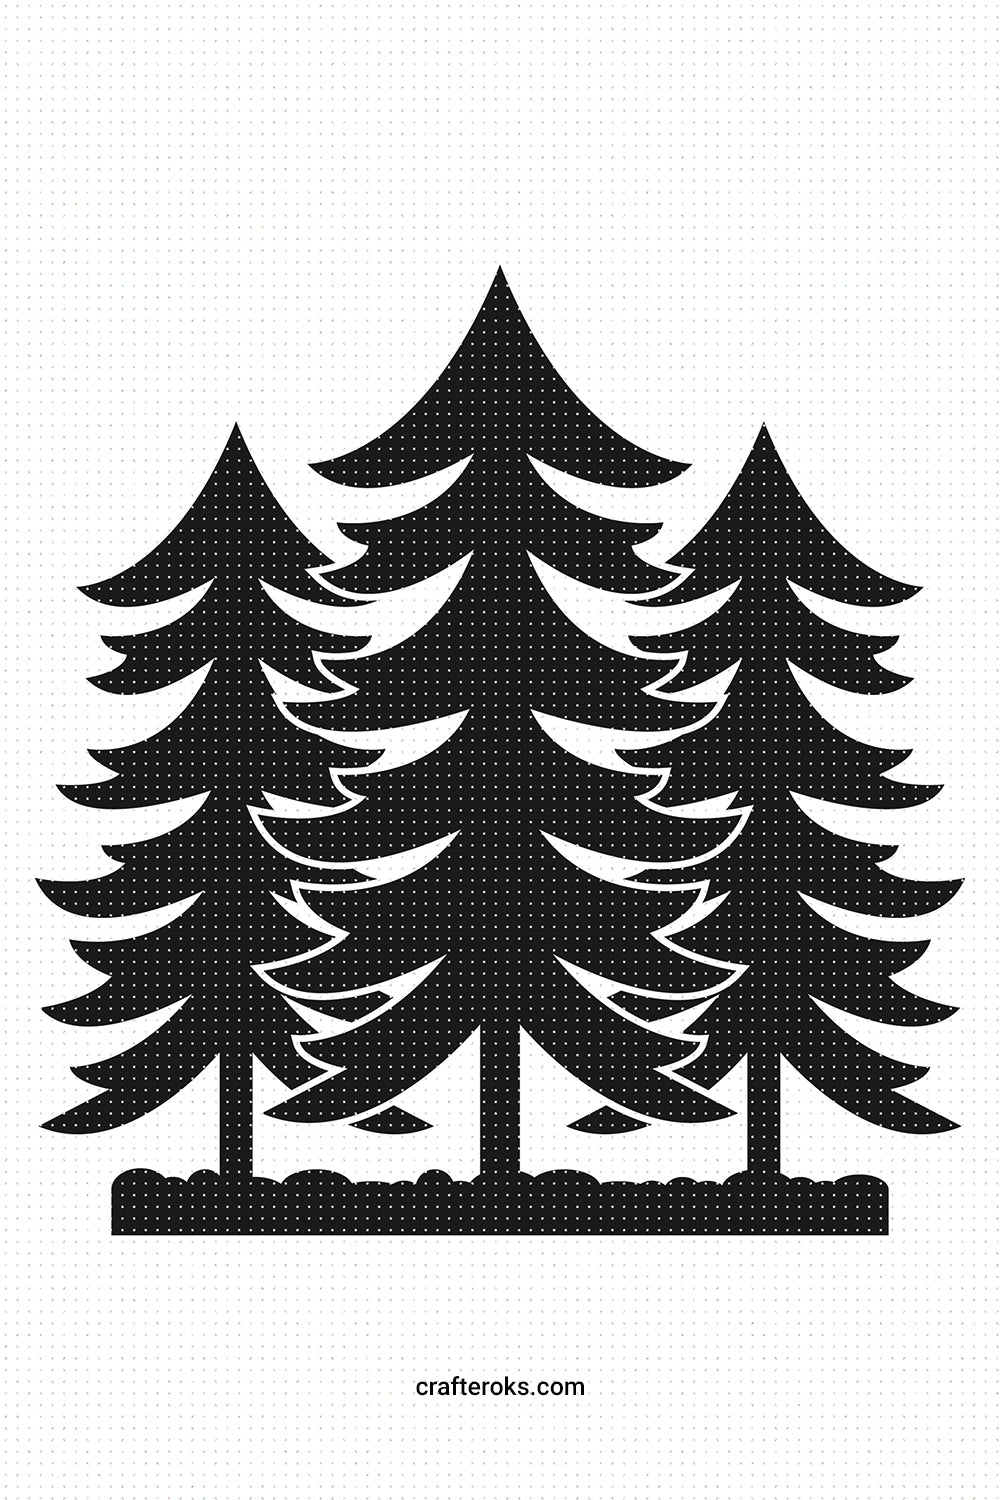 forest SVG, PNG, DXF, clipart, EPS, vector cut file instant download